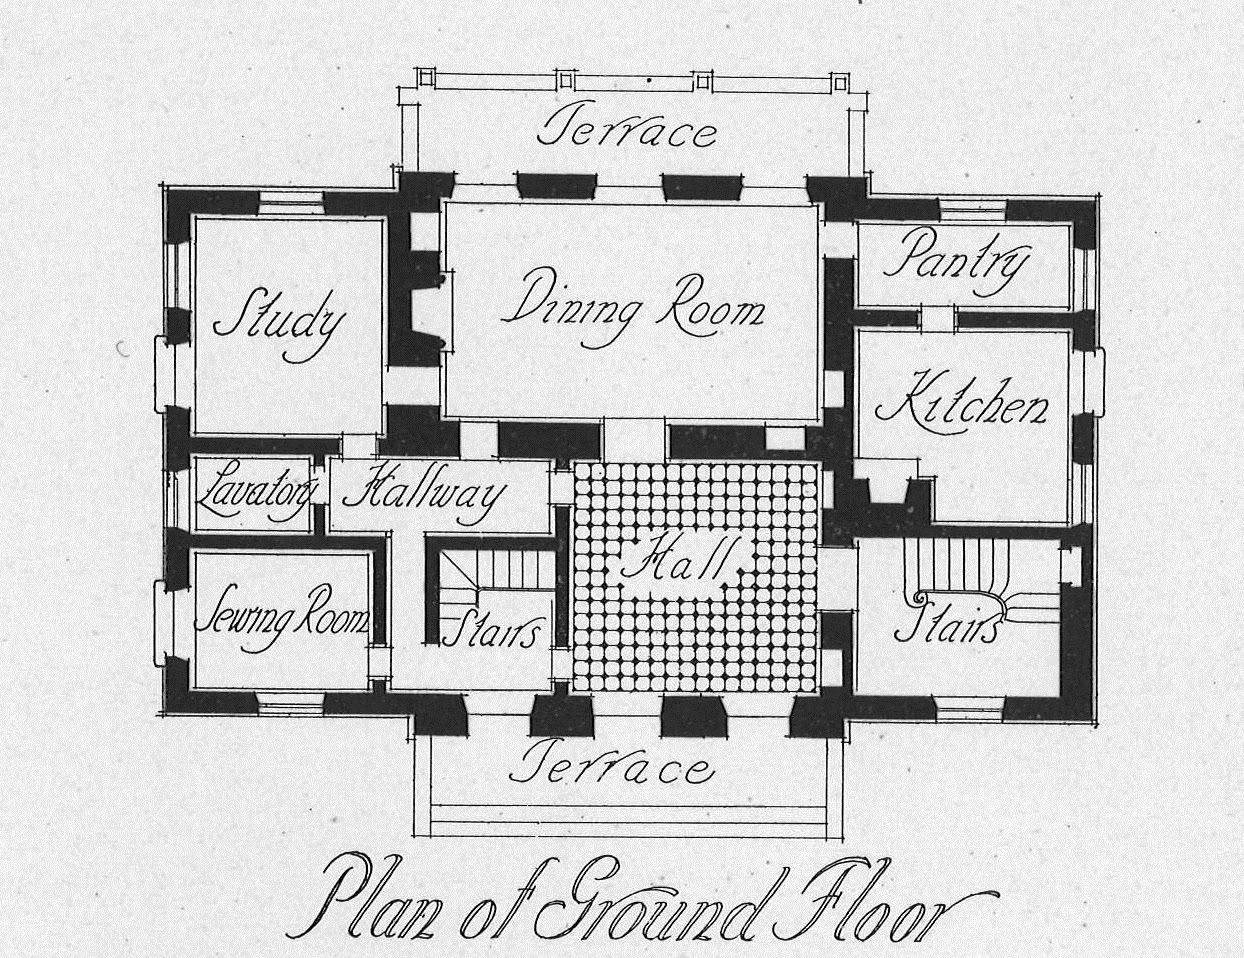 Clarence house london floor plan - House plans